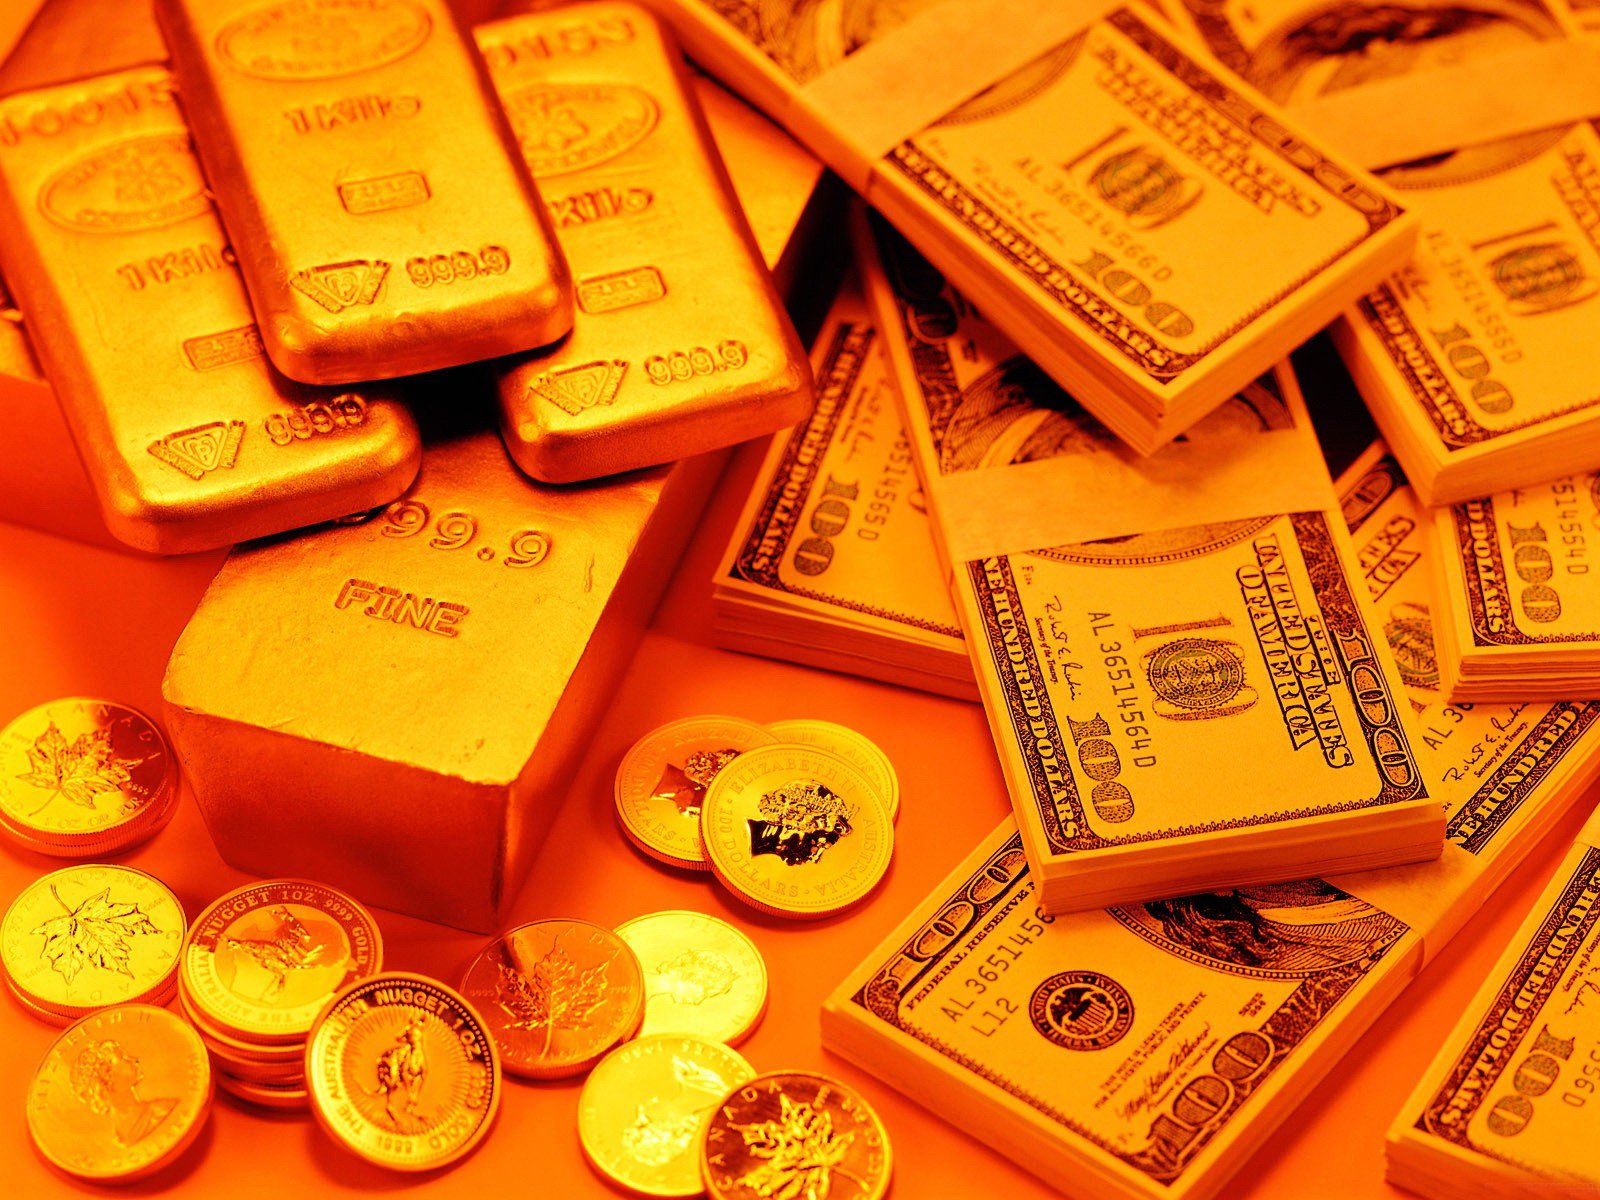 ����� ����� ����� ������� �� ��� 21-4-2014 , The price of gold in Egypt